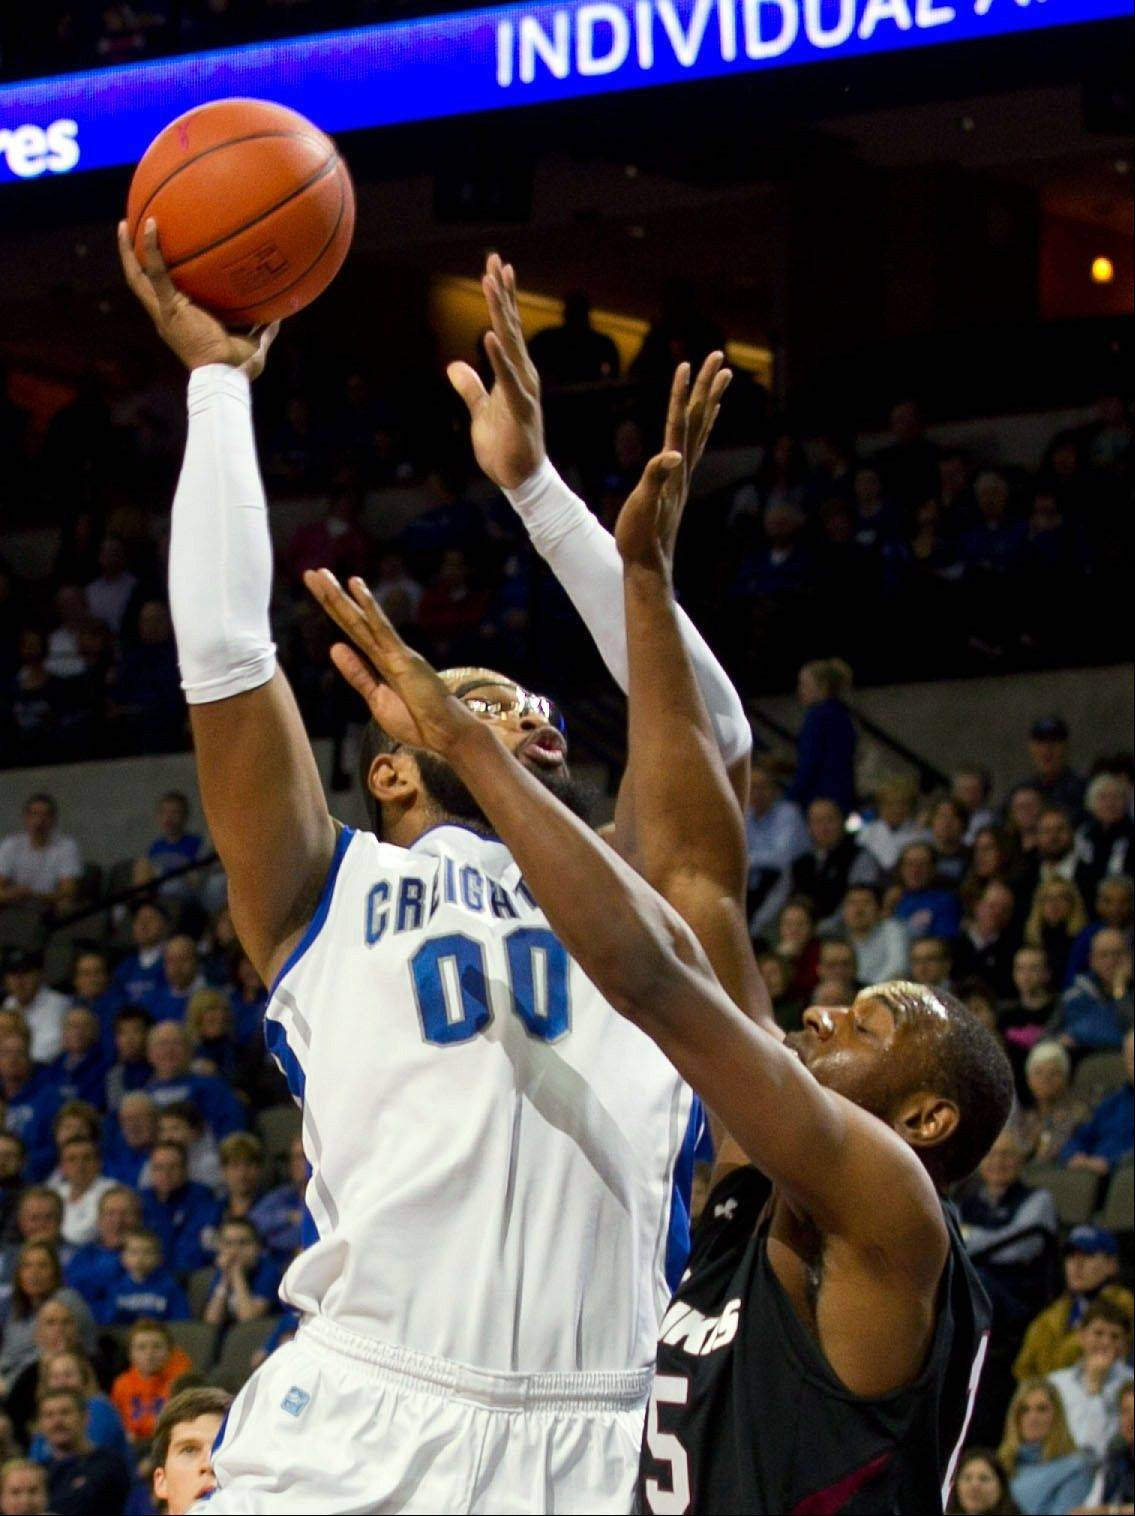 Creighton's Gregory Echenique (00) shoots over Southern Illinois' Dantiel Daniels (15) during the first half of their NCAA college basketball game, Tuesday, Feb. 19, 2013, in Omaha, Neb. Creighton won 59-45. (AP Photo/The World-Herald, Mark Davis) MAGS OUT; ALL NEBRASKA LOCAL BROADCAST TV OUT